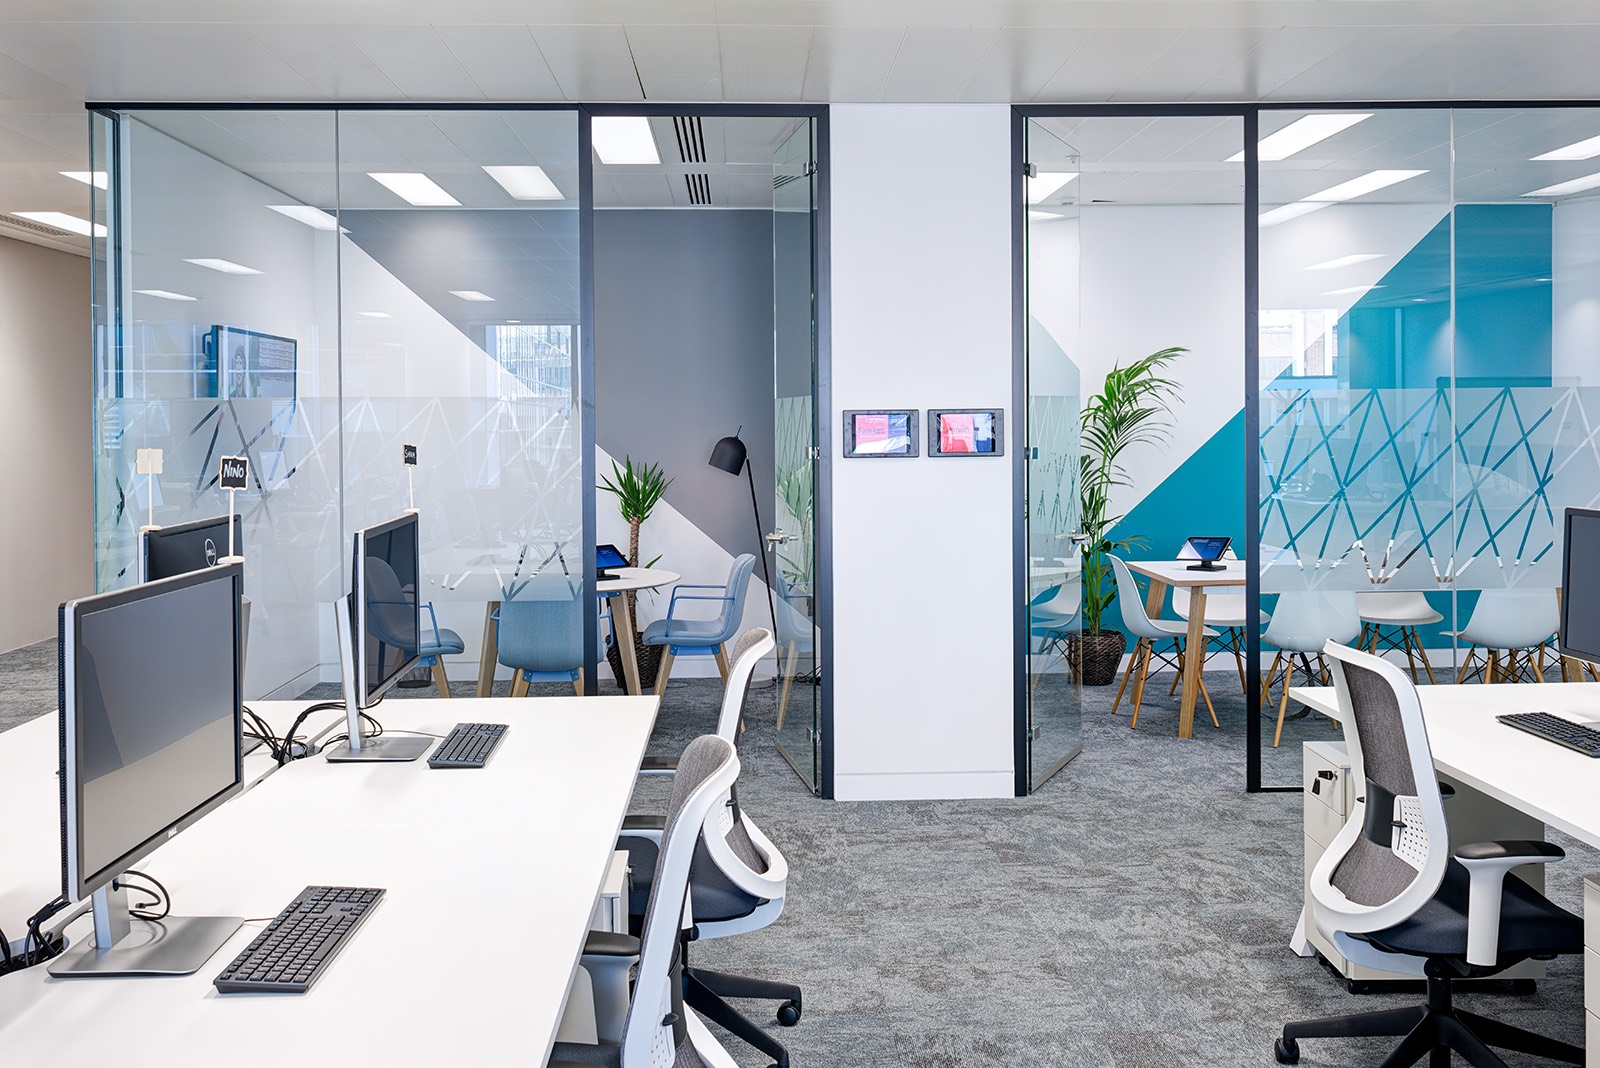 A Tour Of Uber's London Office Expansion